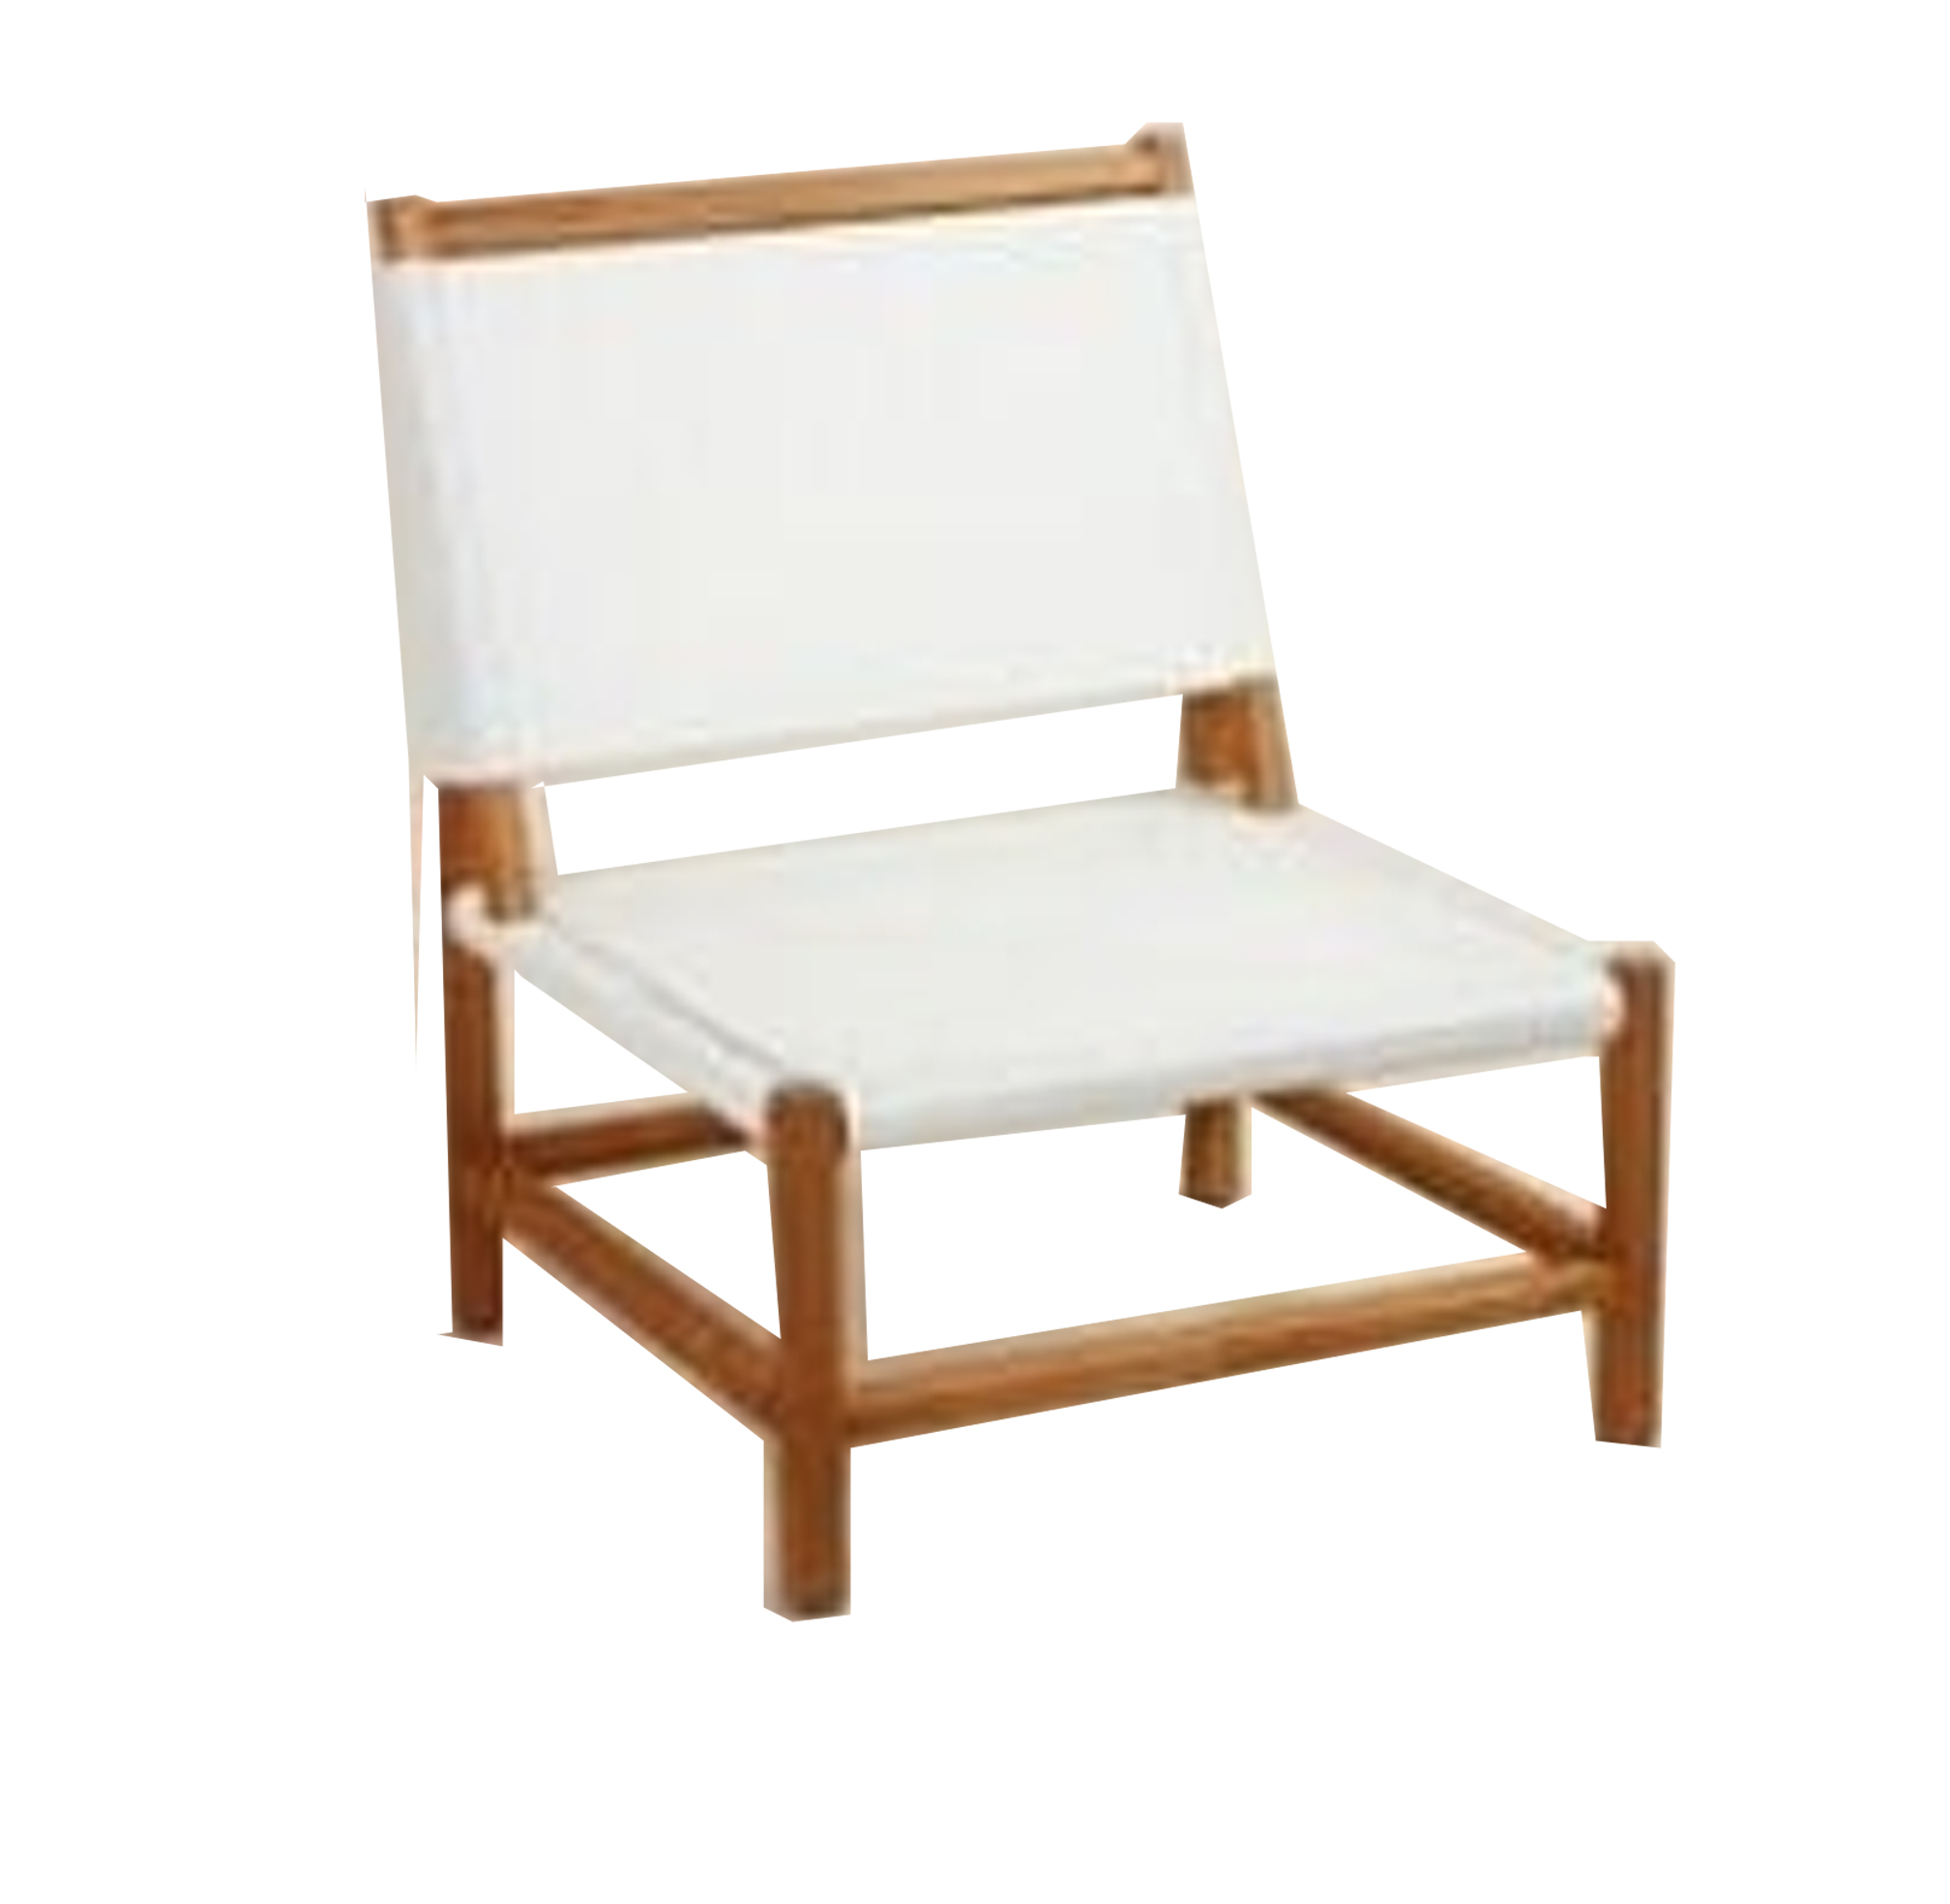 White & Wood Outdoor Chair | $25